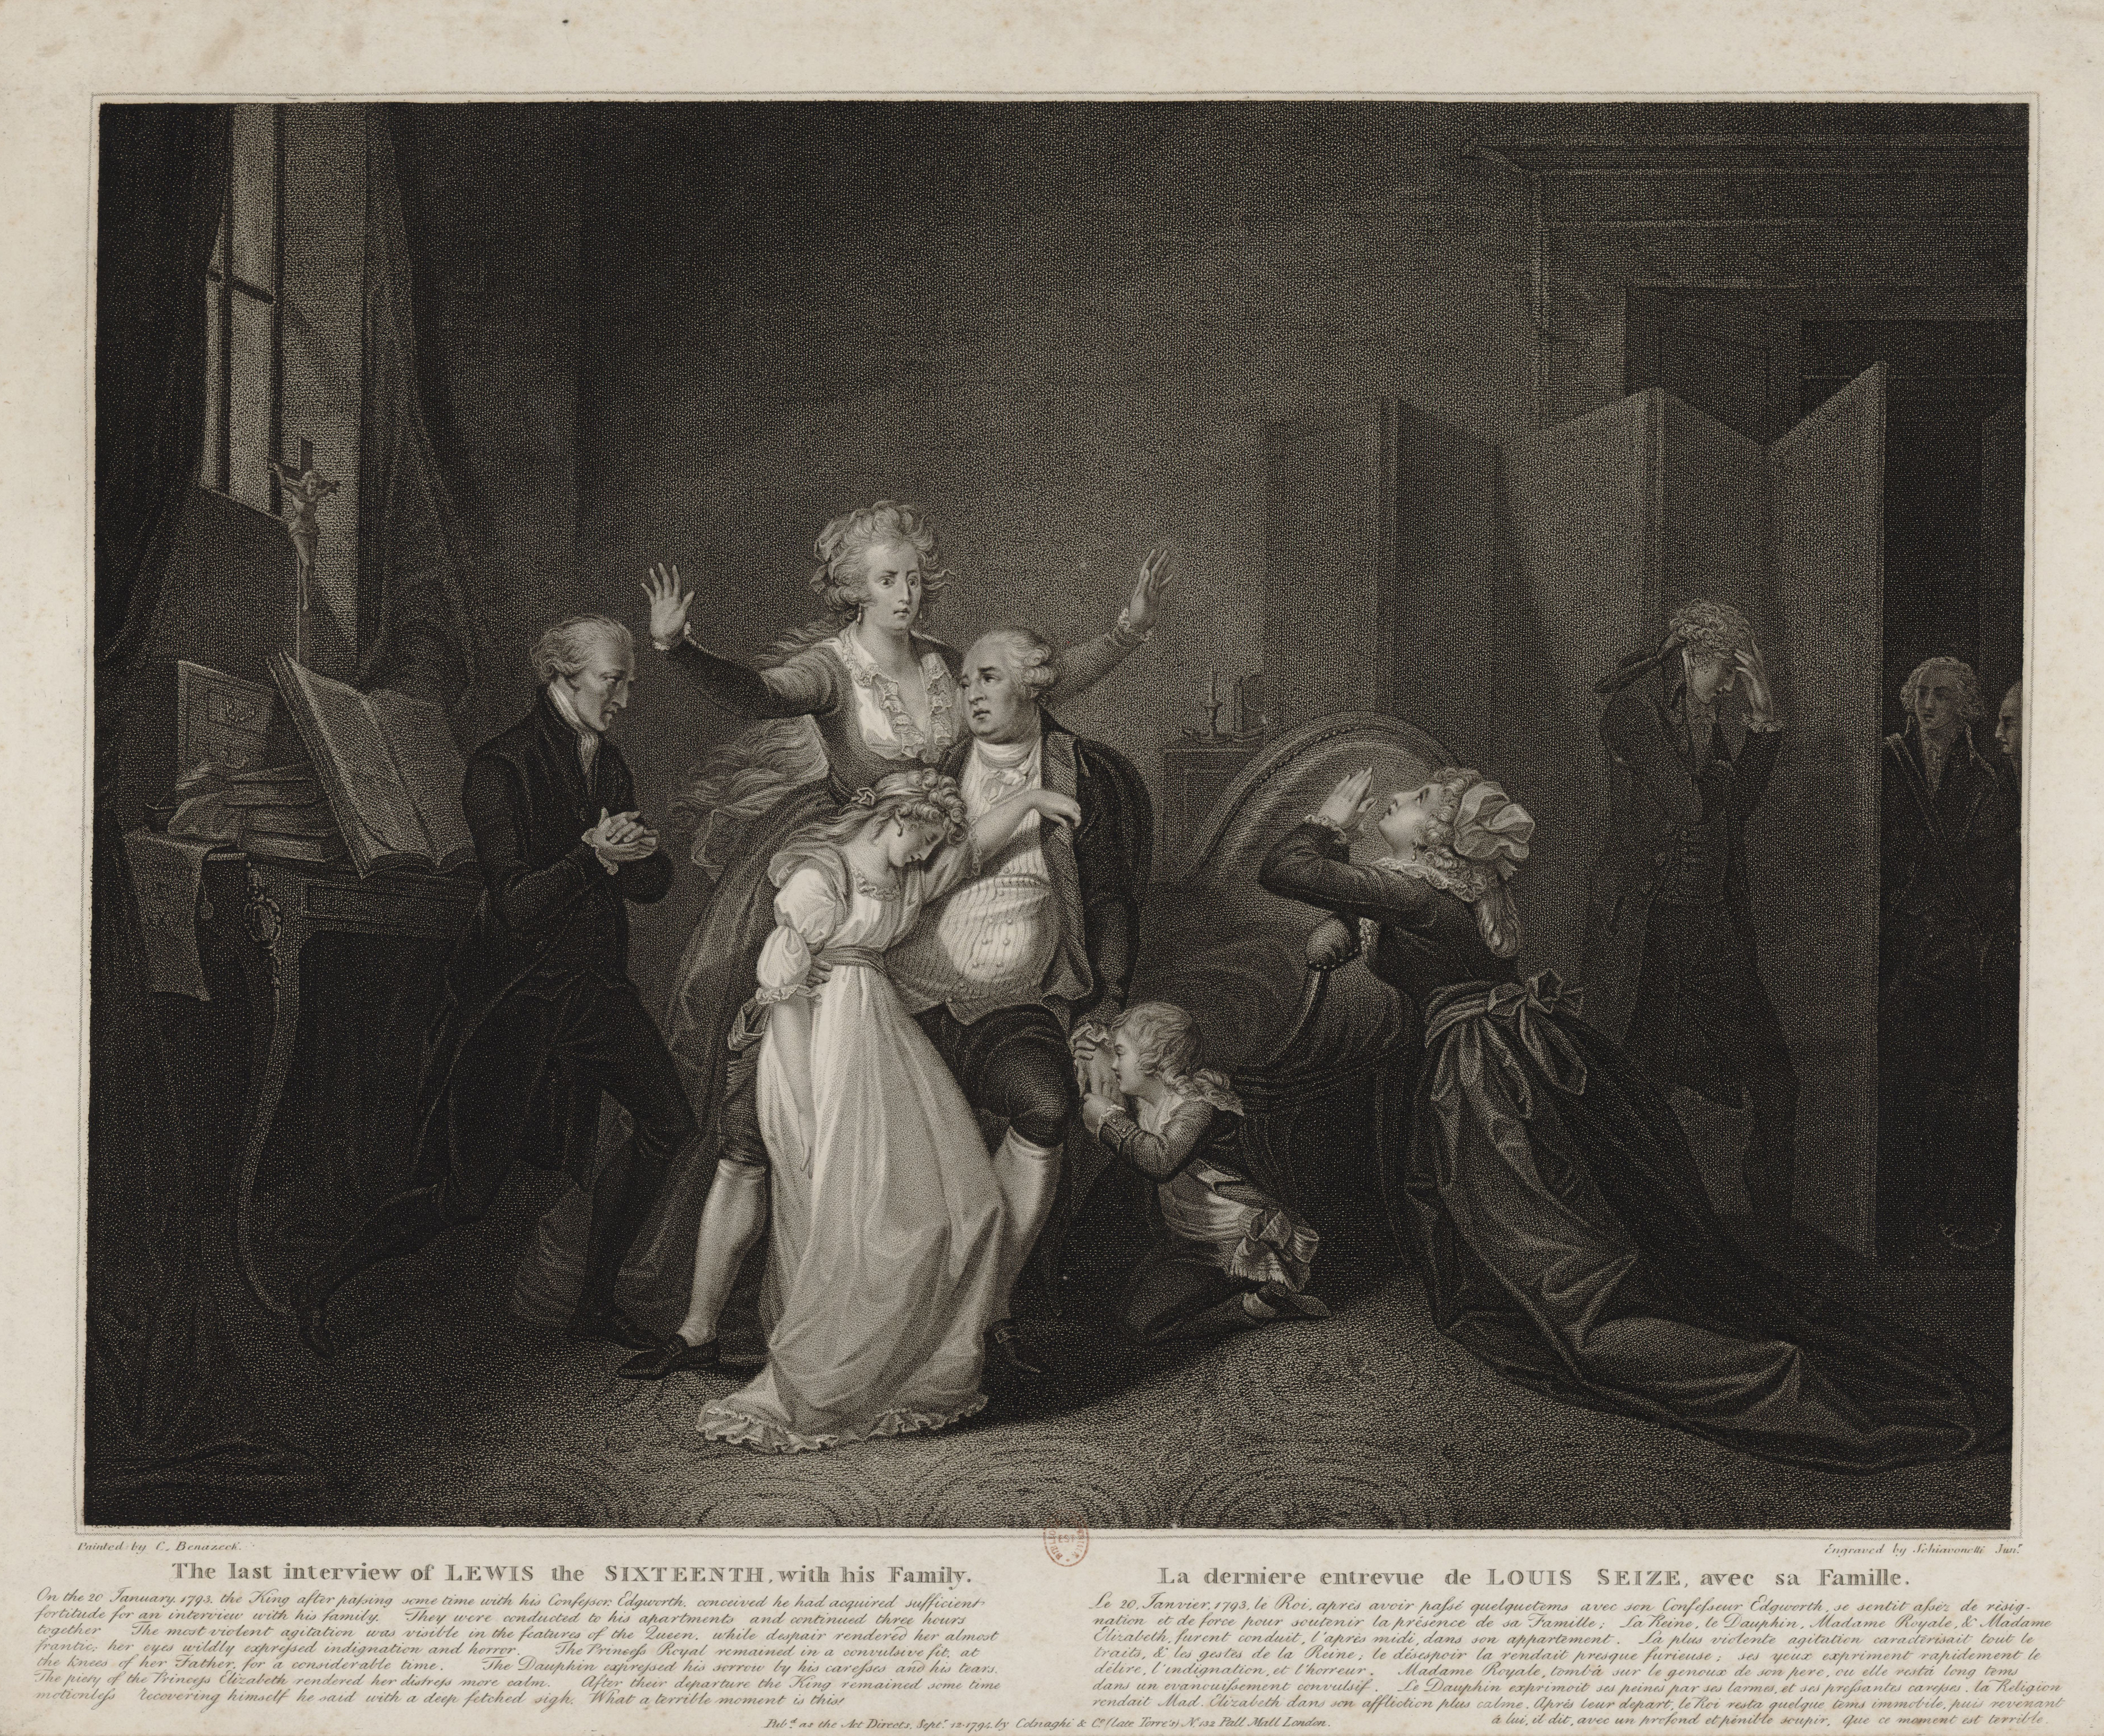 Engraving of King Louis XVI's last meeting with his family